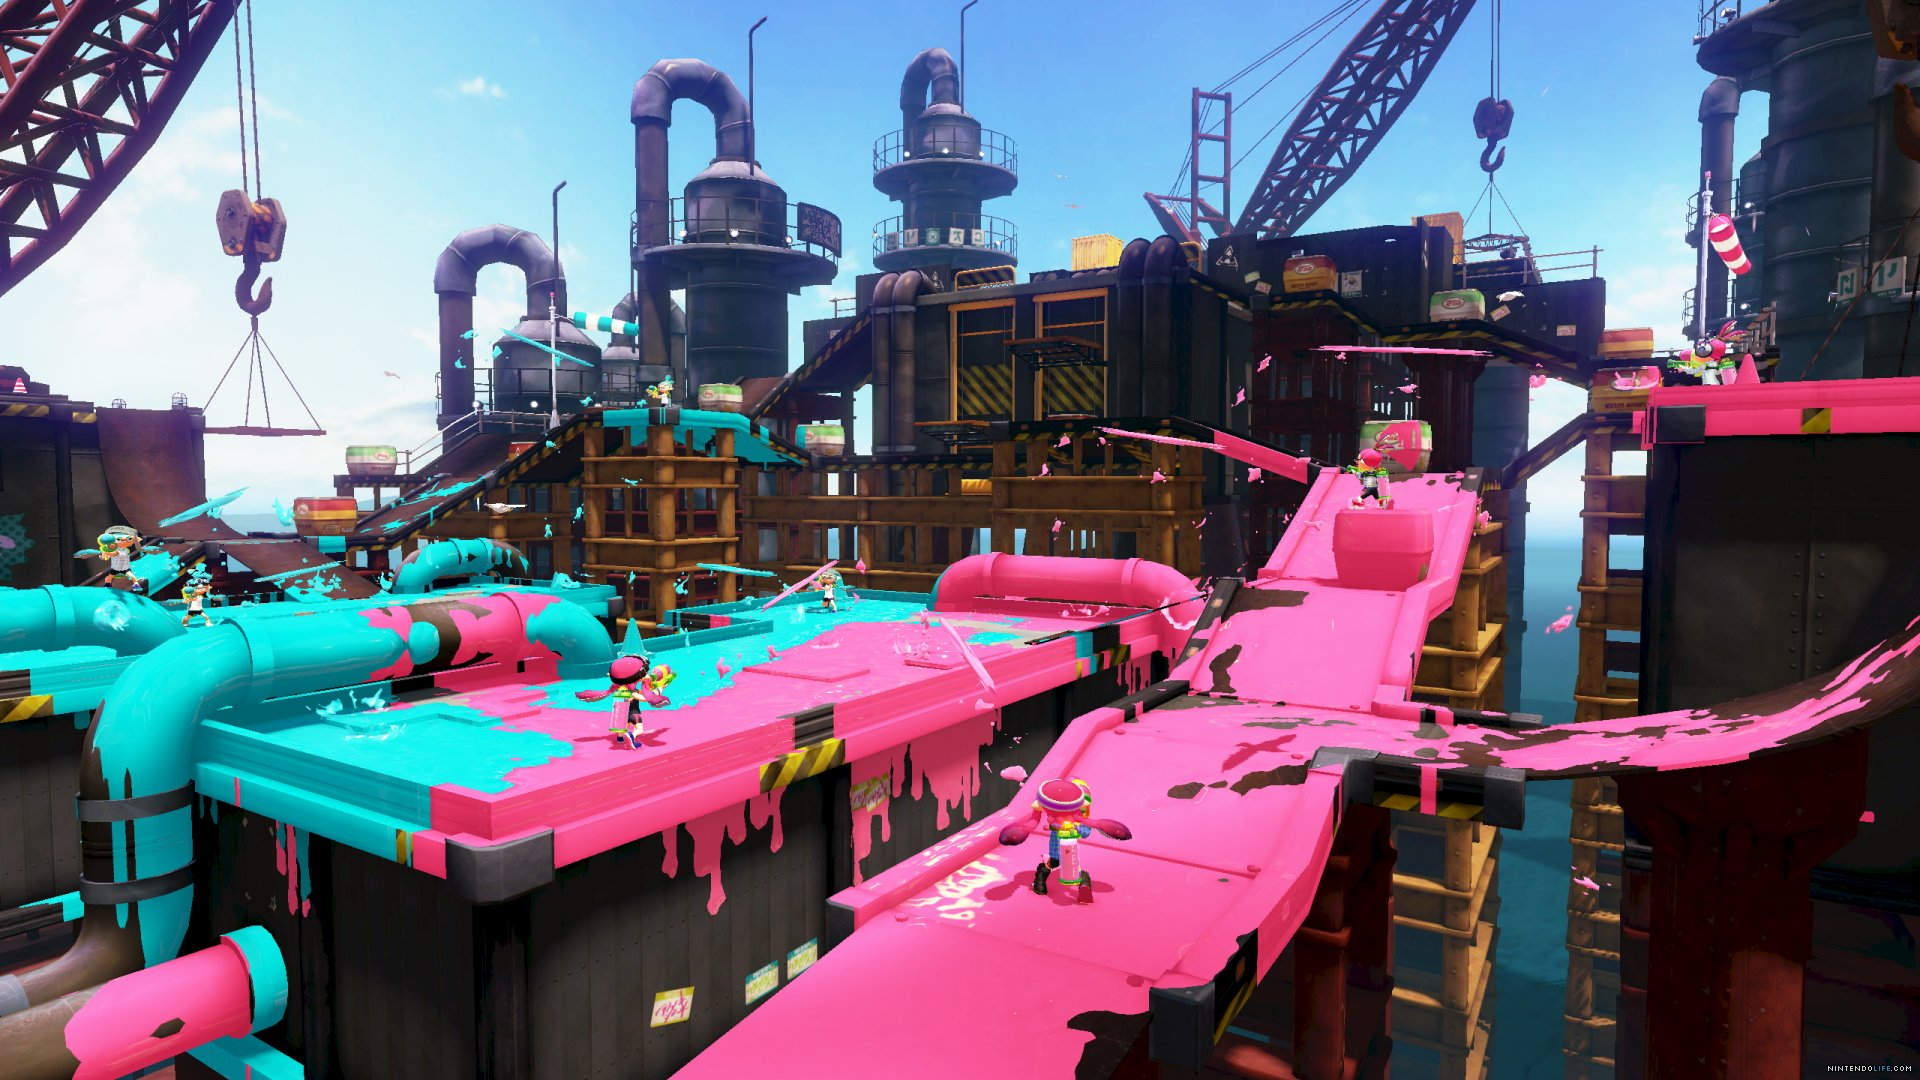 Splatoon is all about shooting paint.